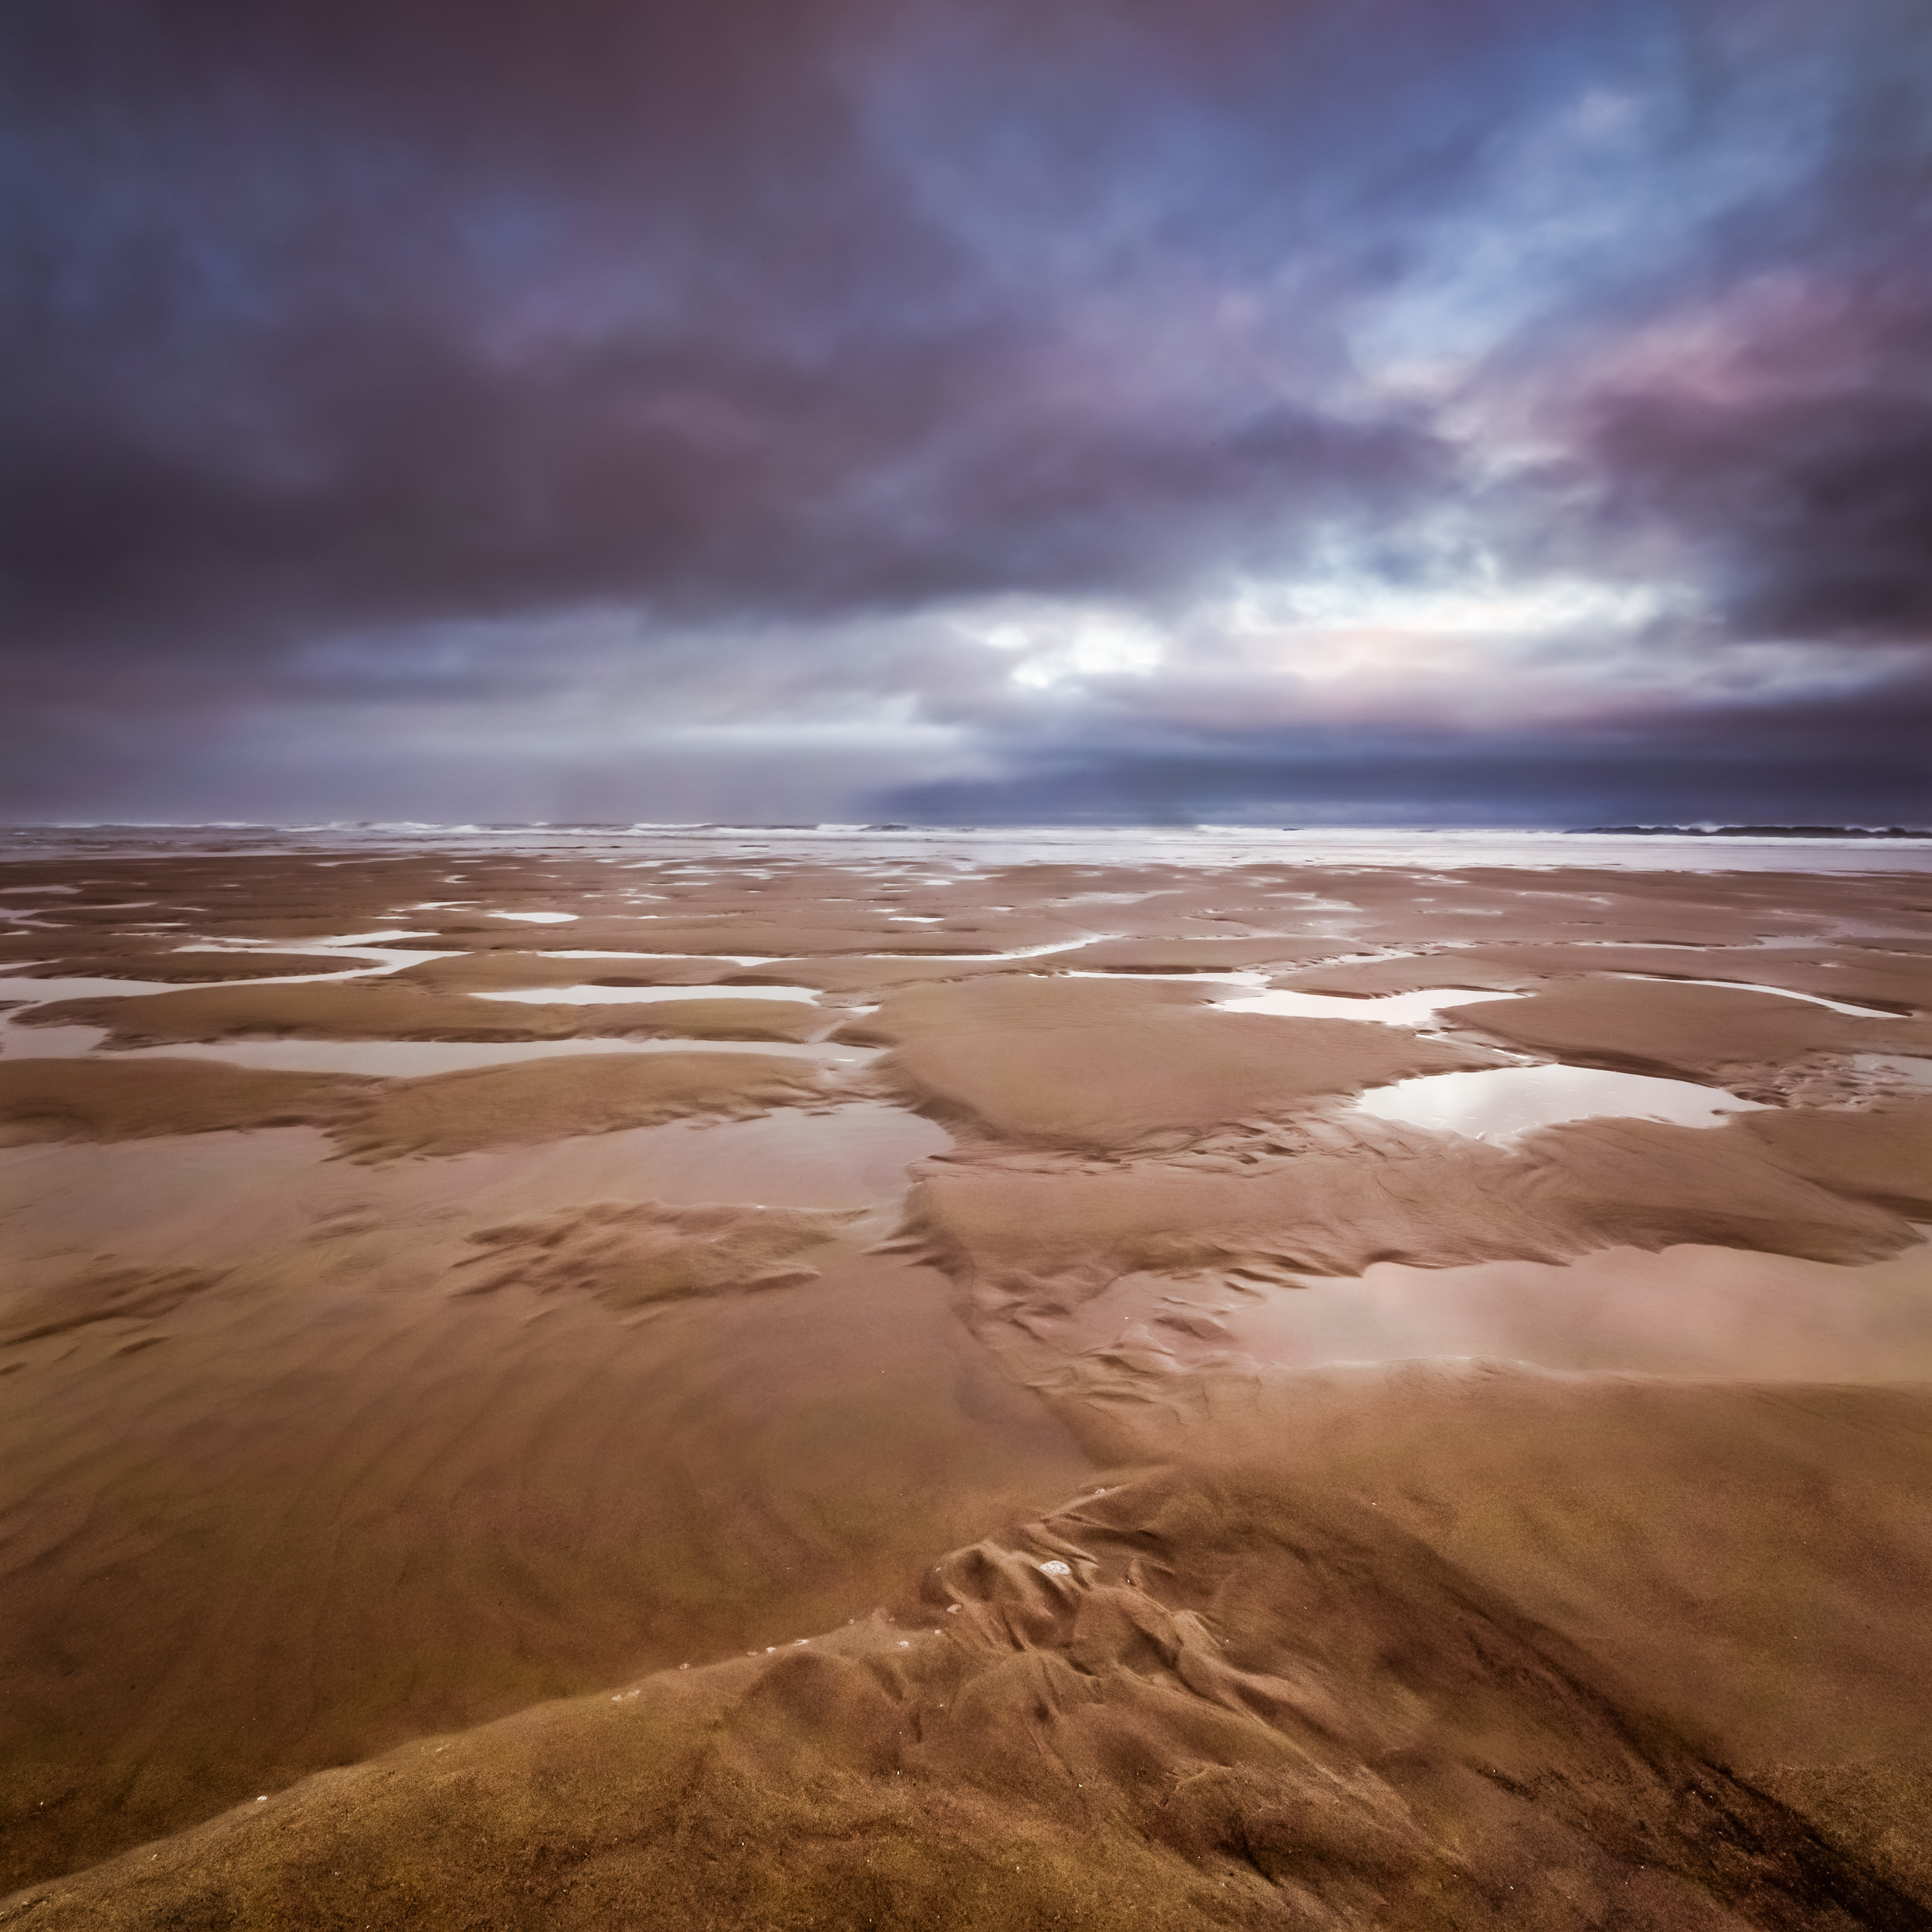 Low Tide - 12x12 print in a 16x16 mat  Taken on July 6, 2015 in Lincoln City, Oregon.  This photo was taken with a tilt shift lens and is actually three photos stitched together.  First shown at the Denver Art Society - November 2016 First Friday.